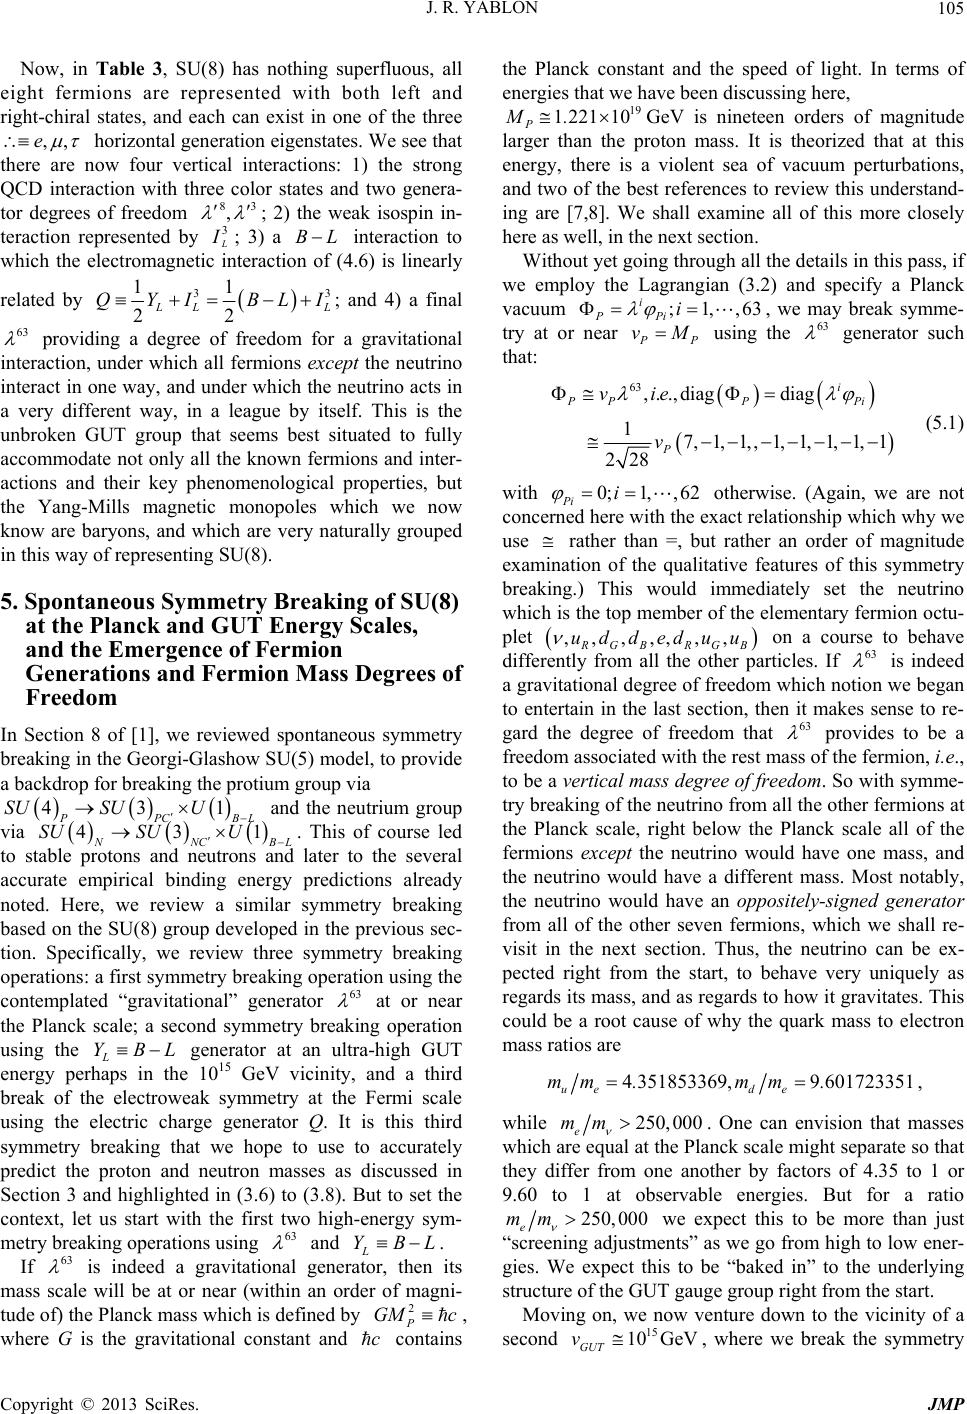 Grand Unified SU(8) Gauge Theory Based on Baryons which ...